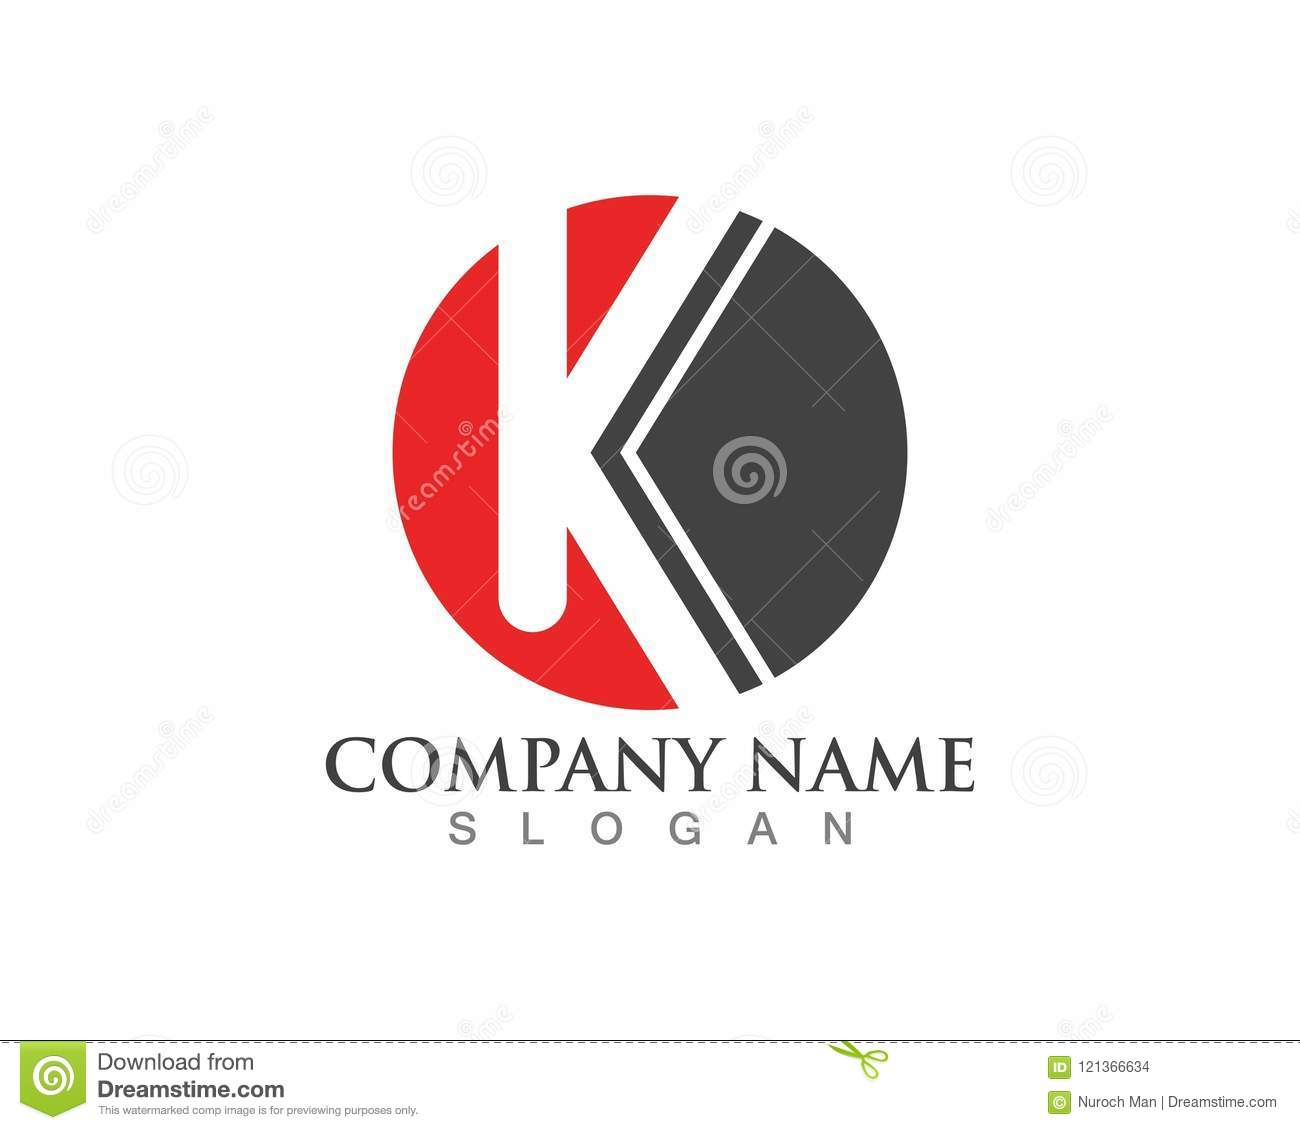 K Letter logo vector icon